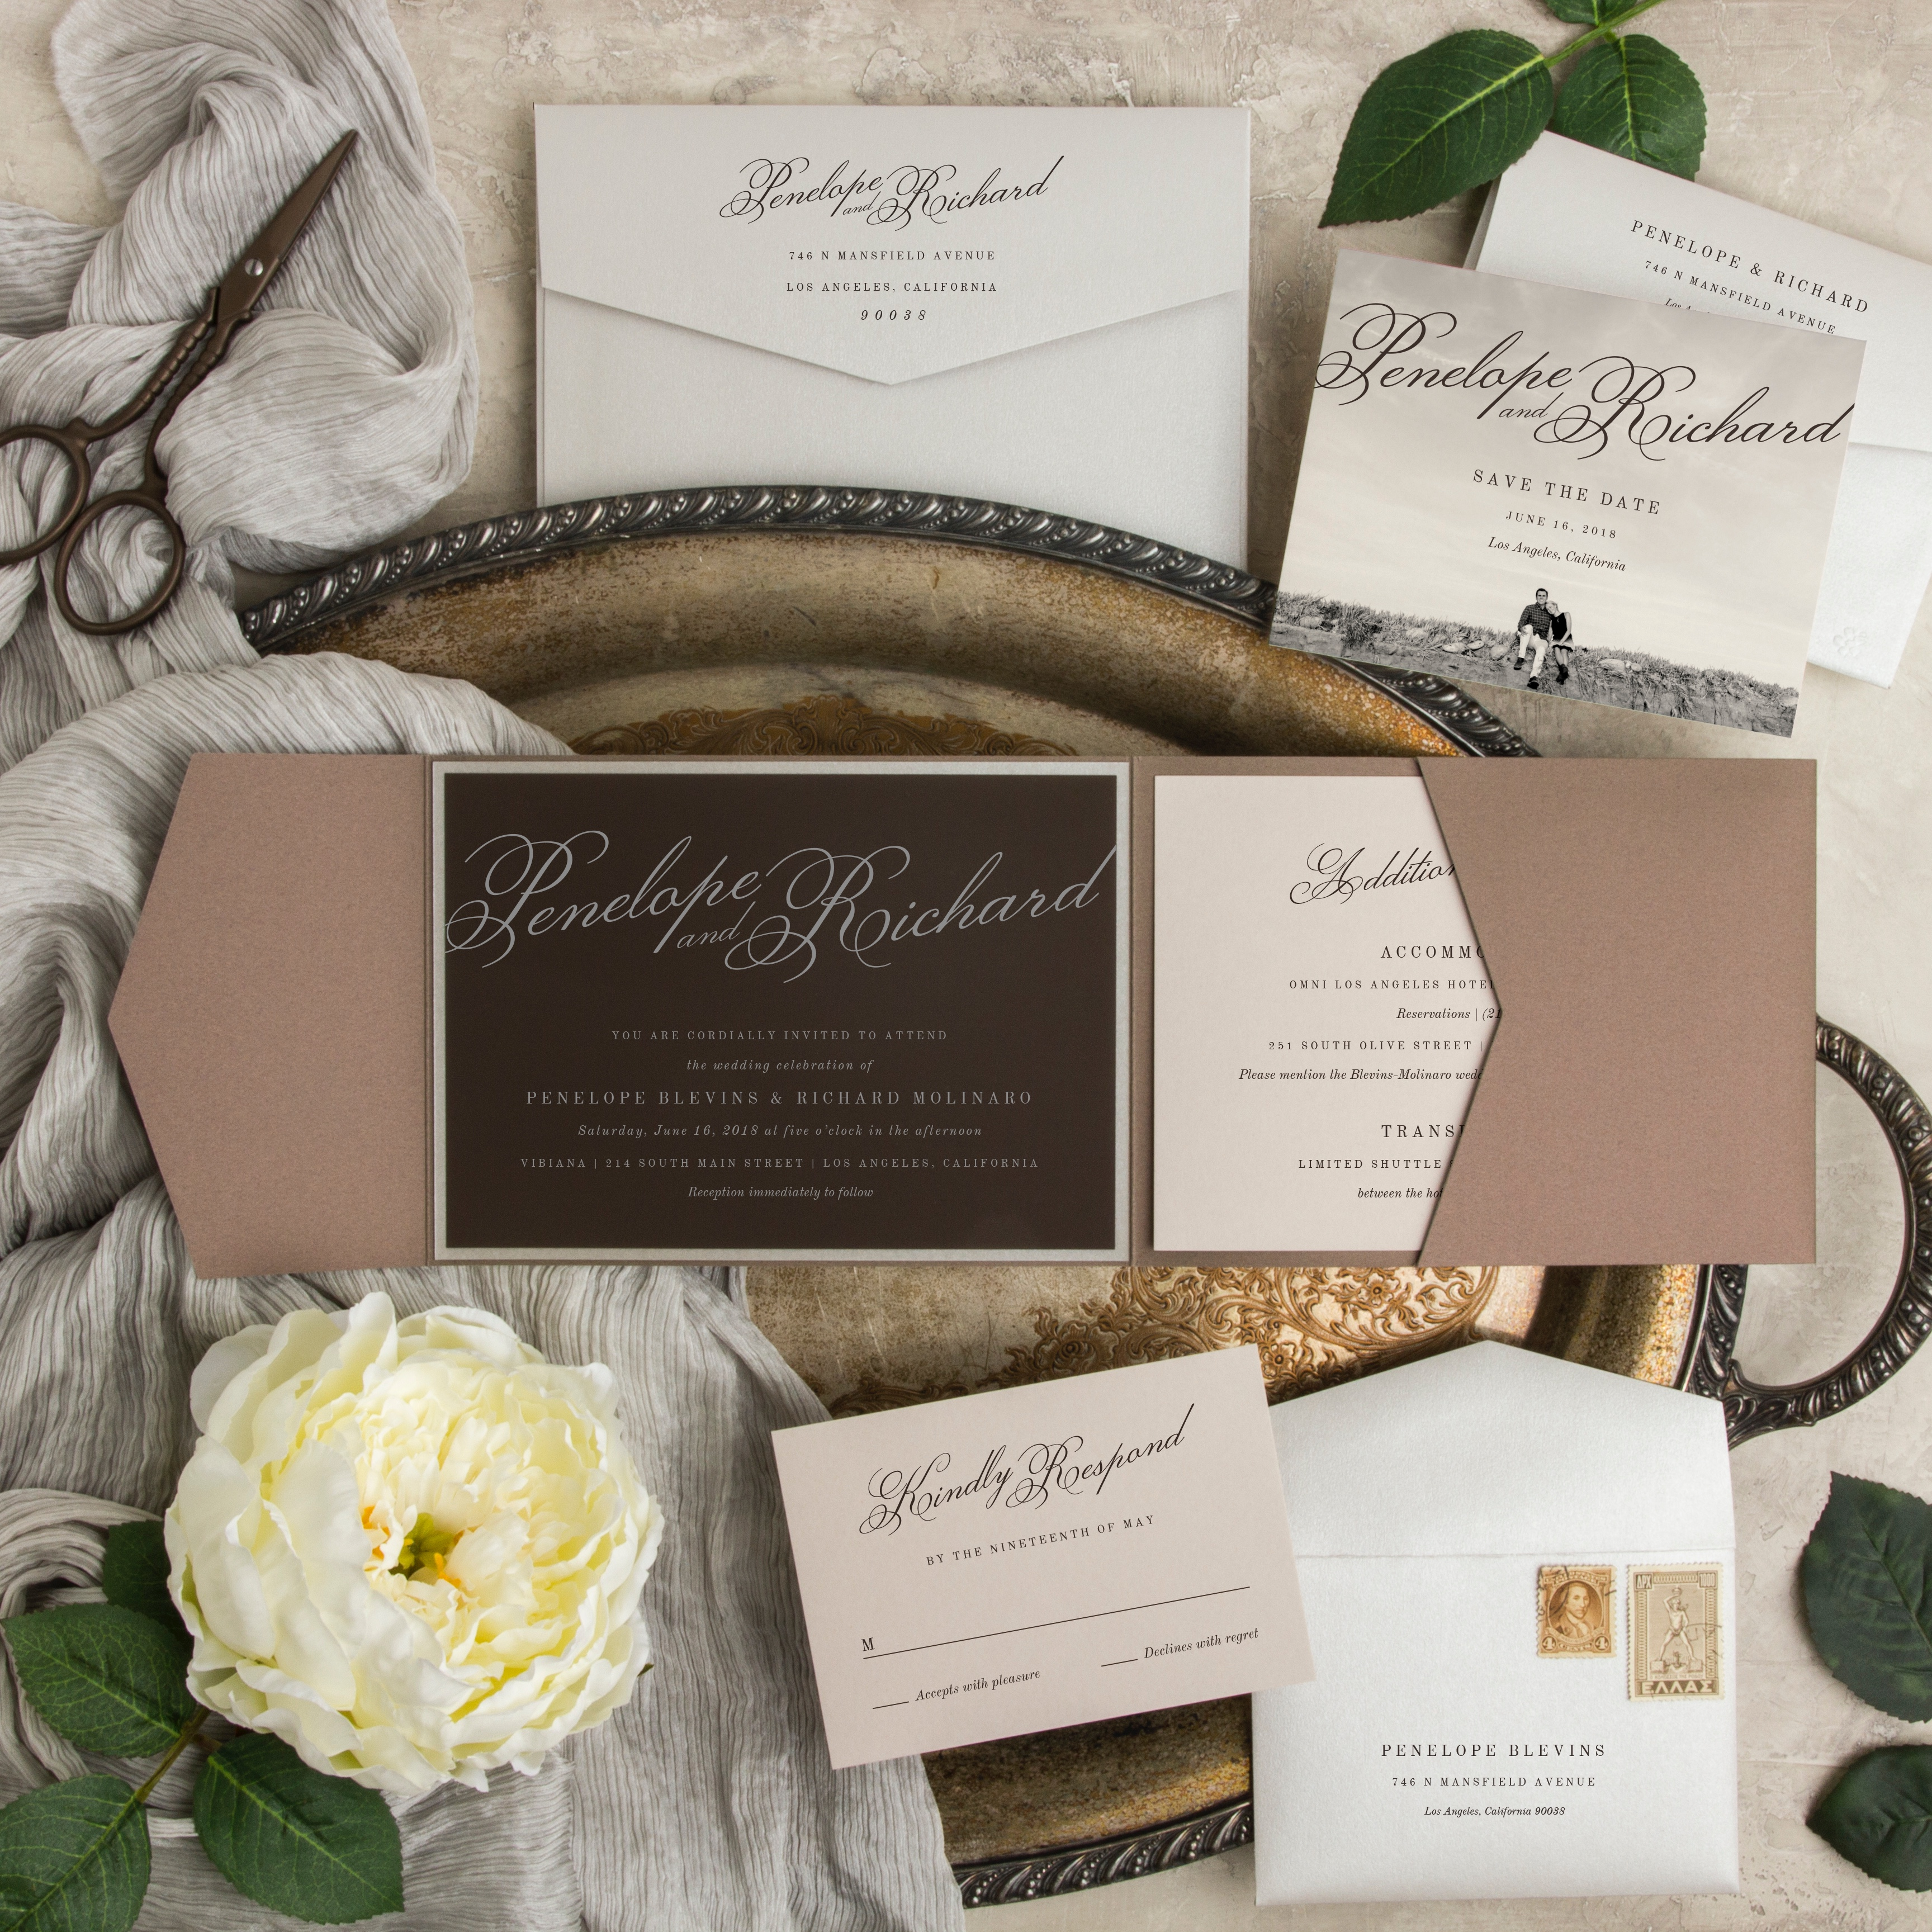 Big Night Pocketfold Wedding Invitation features a beautiful script and rich, bold neutral colors.